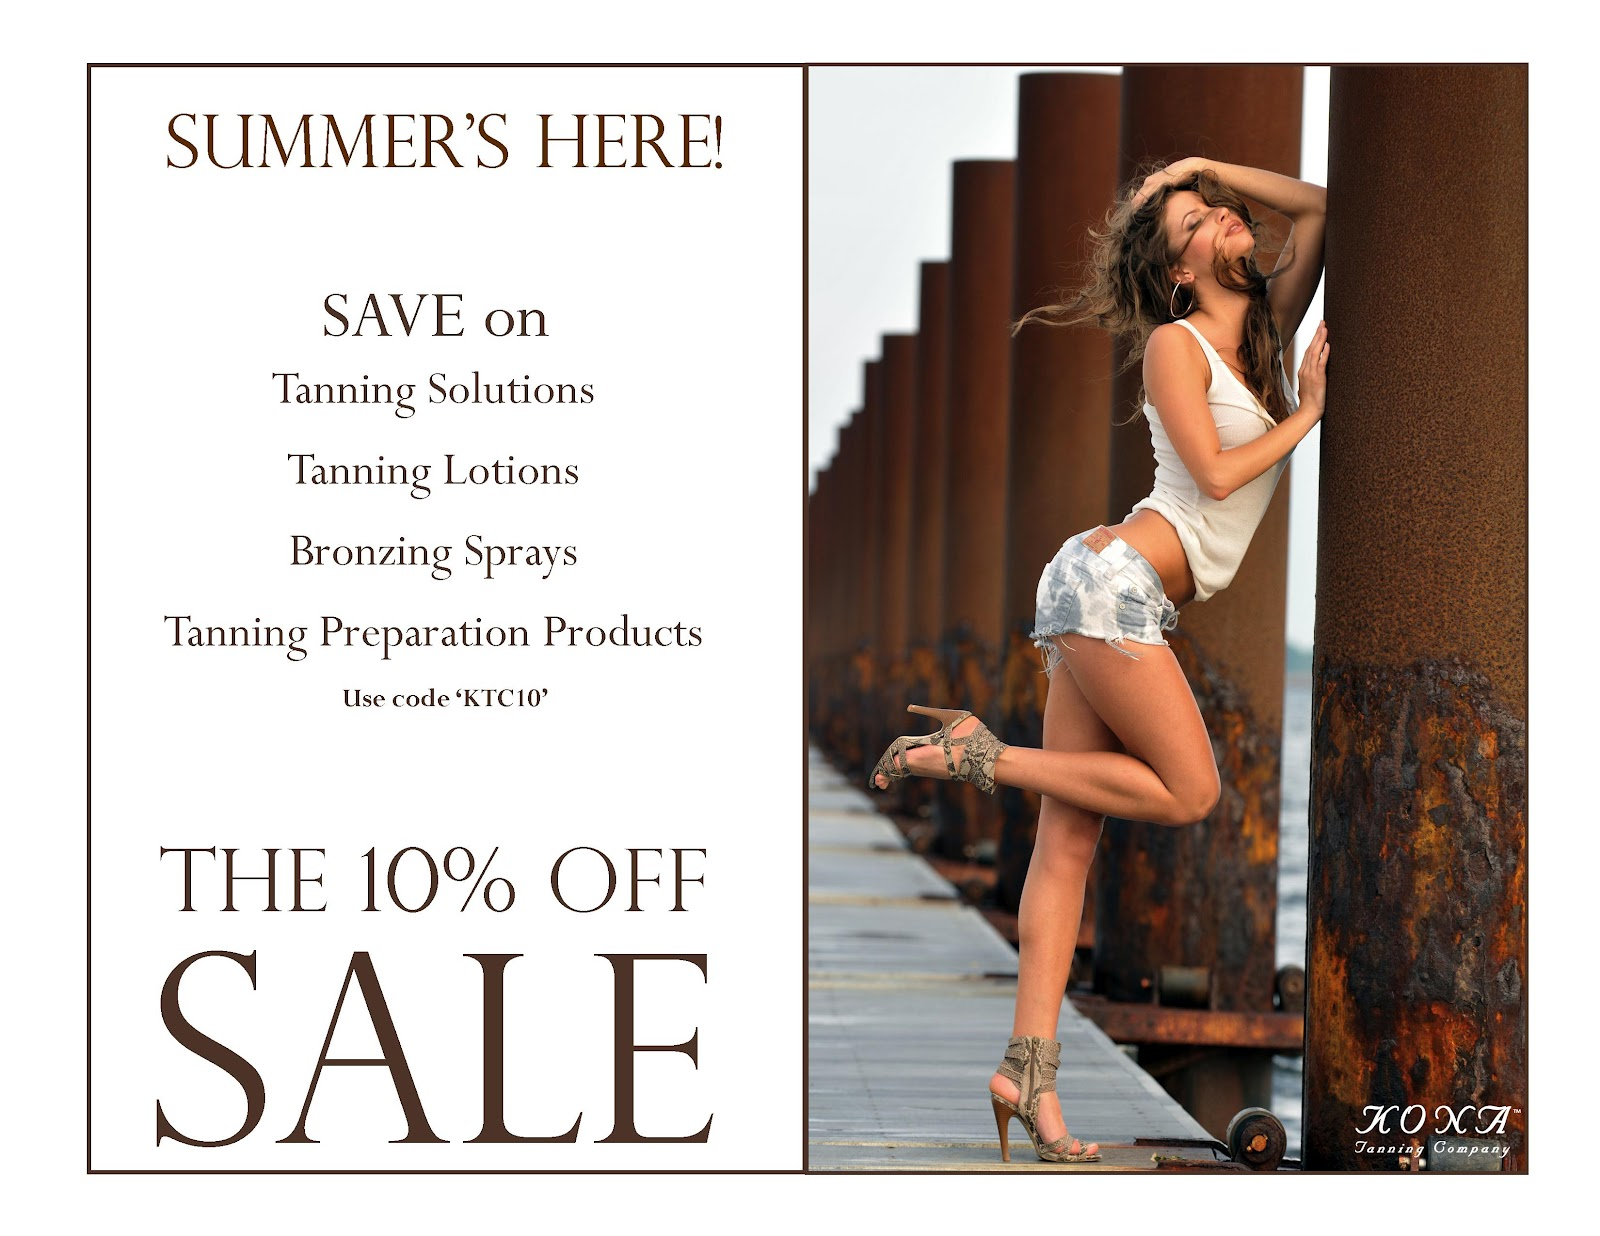 40% Off Summer Solutions Best Promo Codes & Coupon Codes 40% off Up to 40% off your purchase with 4 selected coupons! We have 4 coupon codes, discounts and coupons all together for you to choose from including 3 promo codes and 1 sales as of Oct, 24,